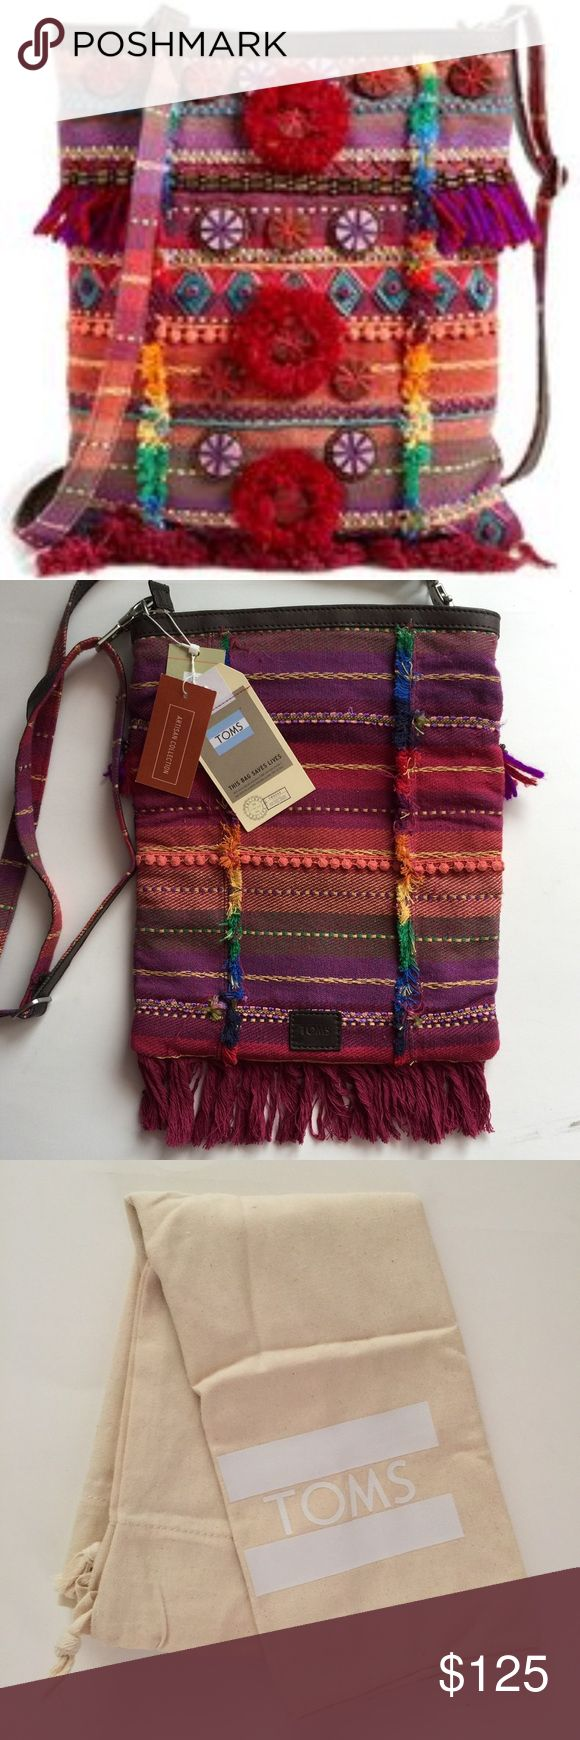 """TOMS Embellished Festival Cross-body Bag NWT rare with embroidery and tassels. Bohemian free spirited bag. Detach strap and fold in half for a clutch! Zippered closure with interior zippered pocket and two other small pockets. 9"""" x 12.5"""". TOMS Bags Crossbody Bags"""